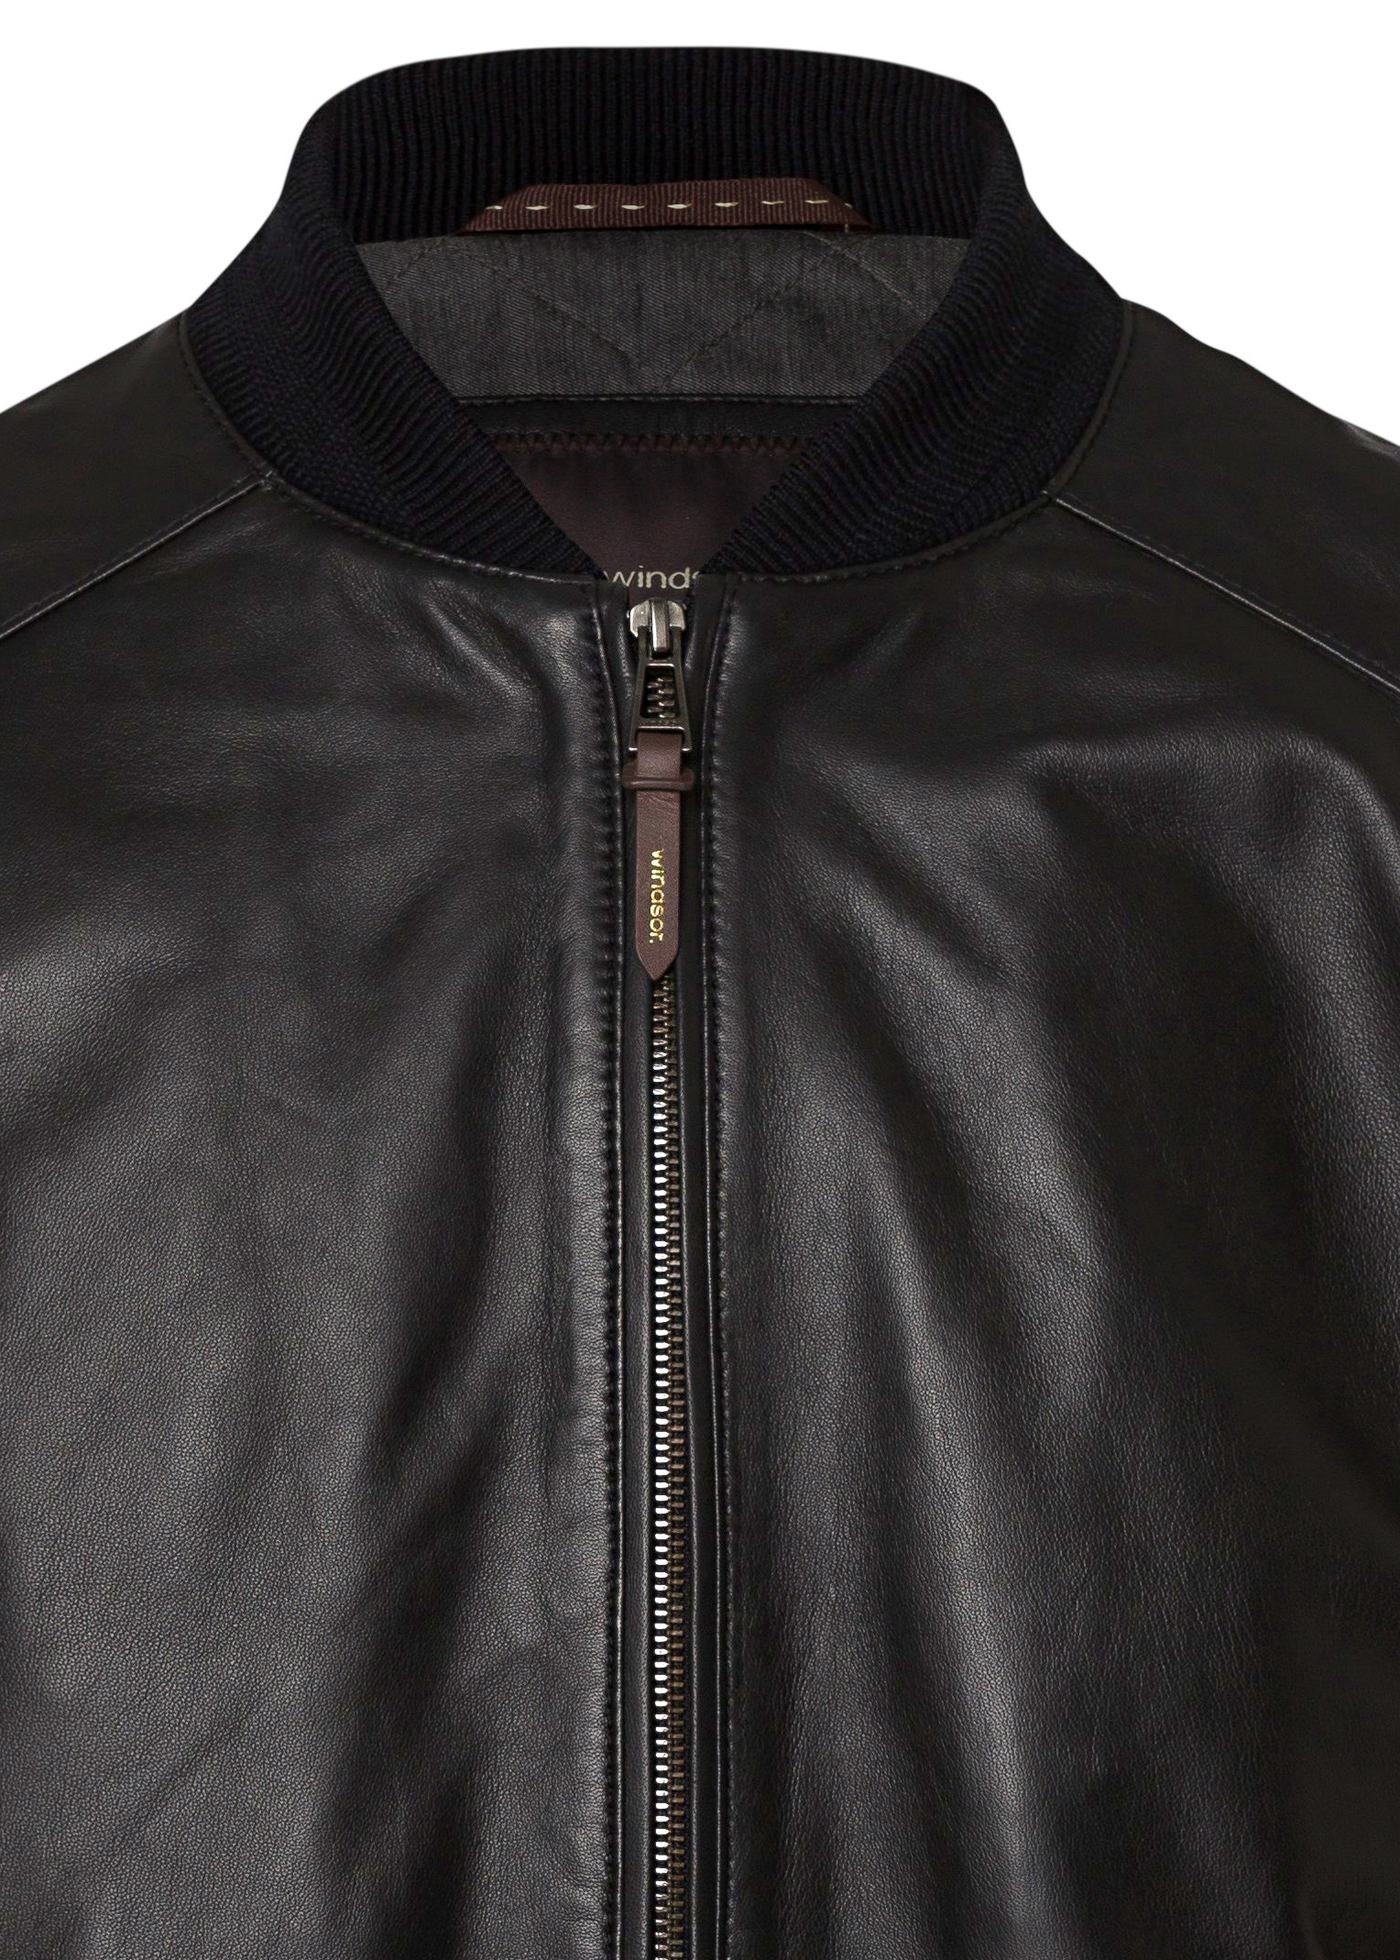 leather jacket Lavello L image number 2